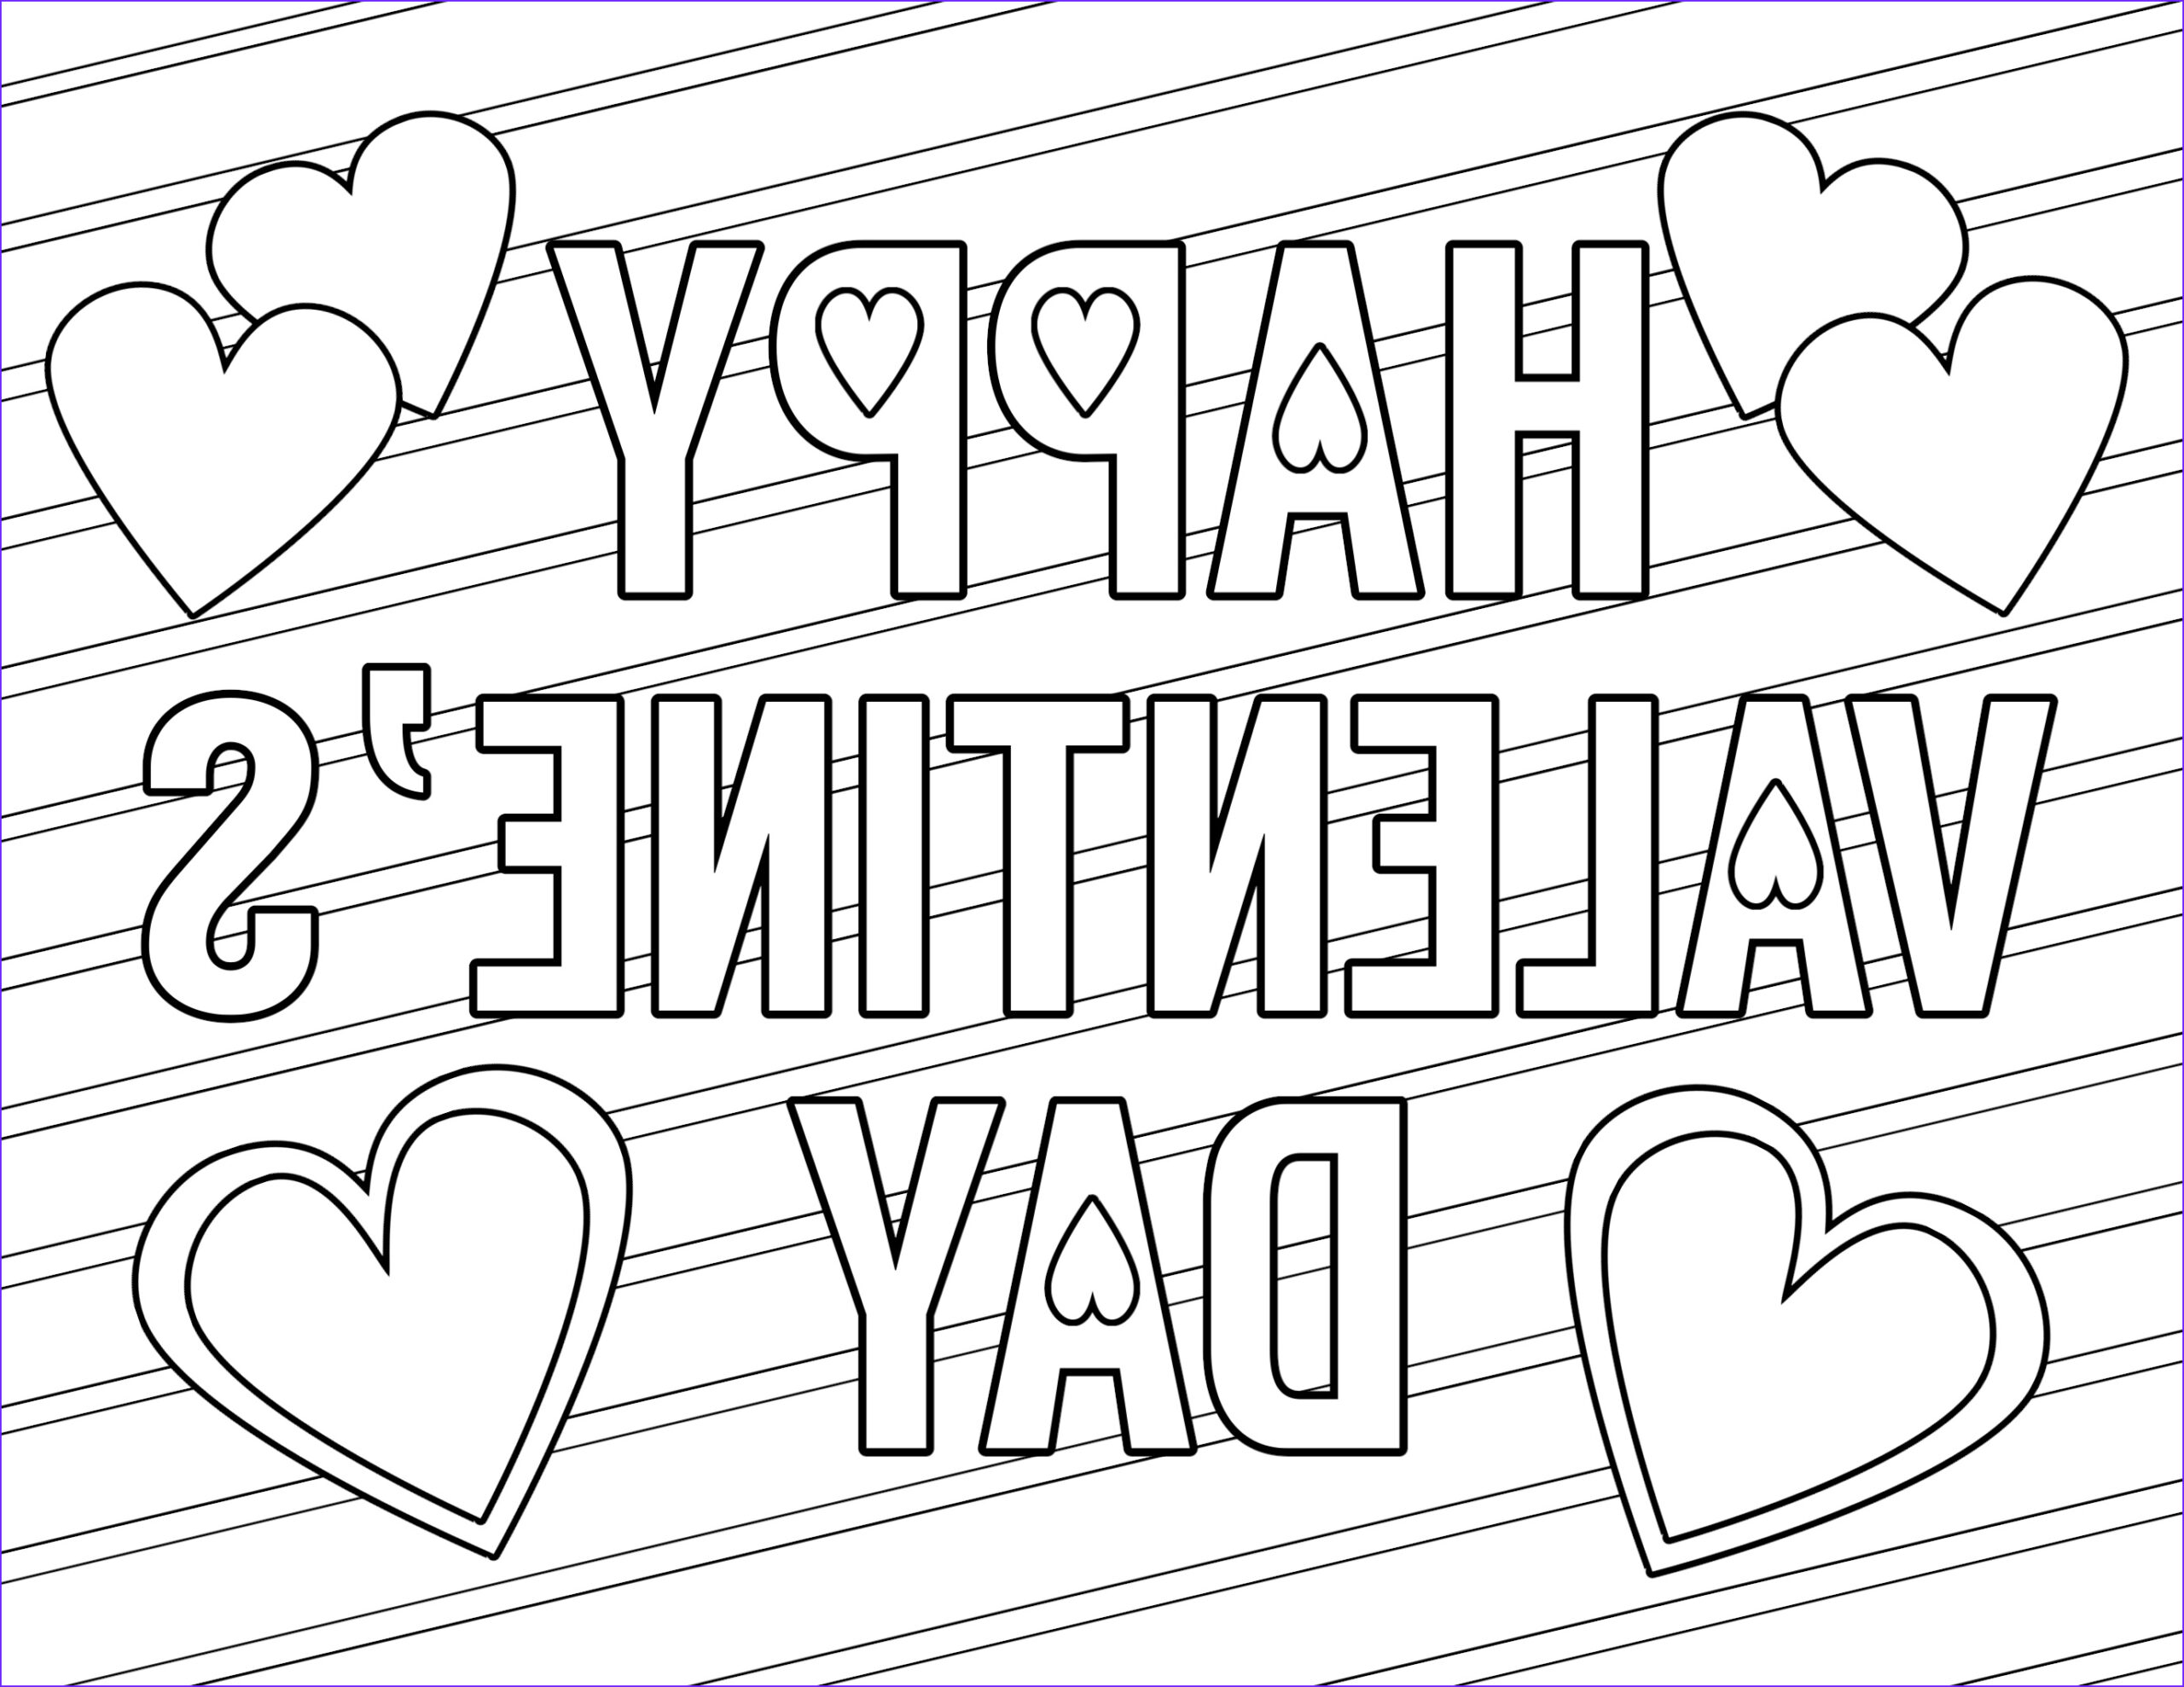 Valentines Printable Coloring Pages Beautiful Gallery Free Printable Valentine Coloring Pages Paper Trail Design